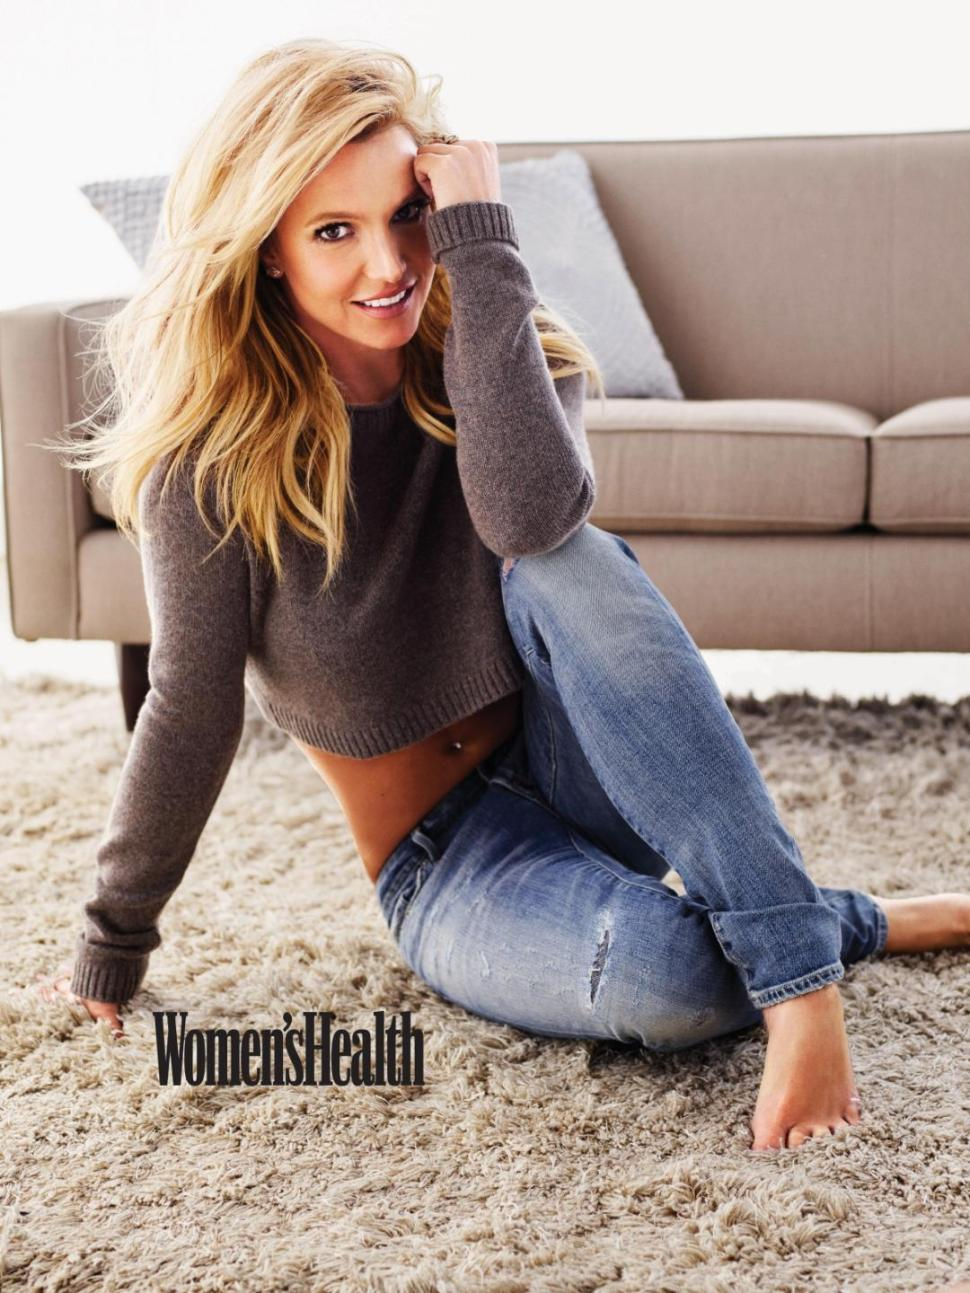 star24-tv-britney-spears-women's-health-couverture-magazine (3)